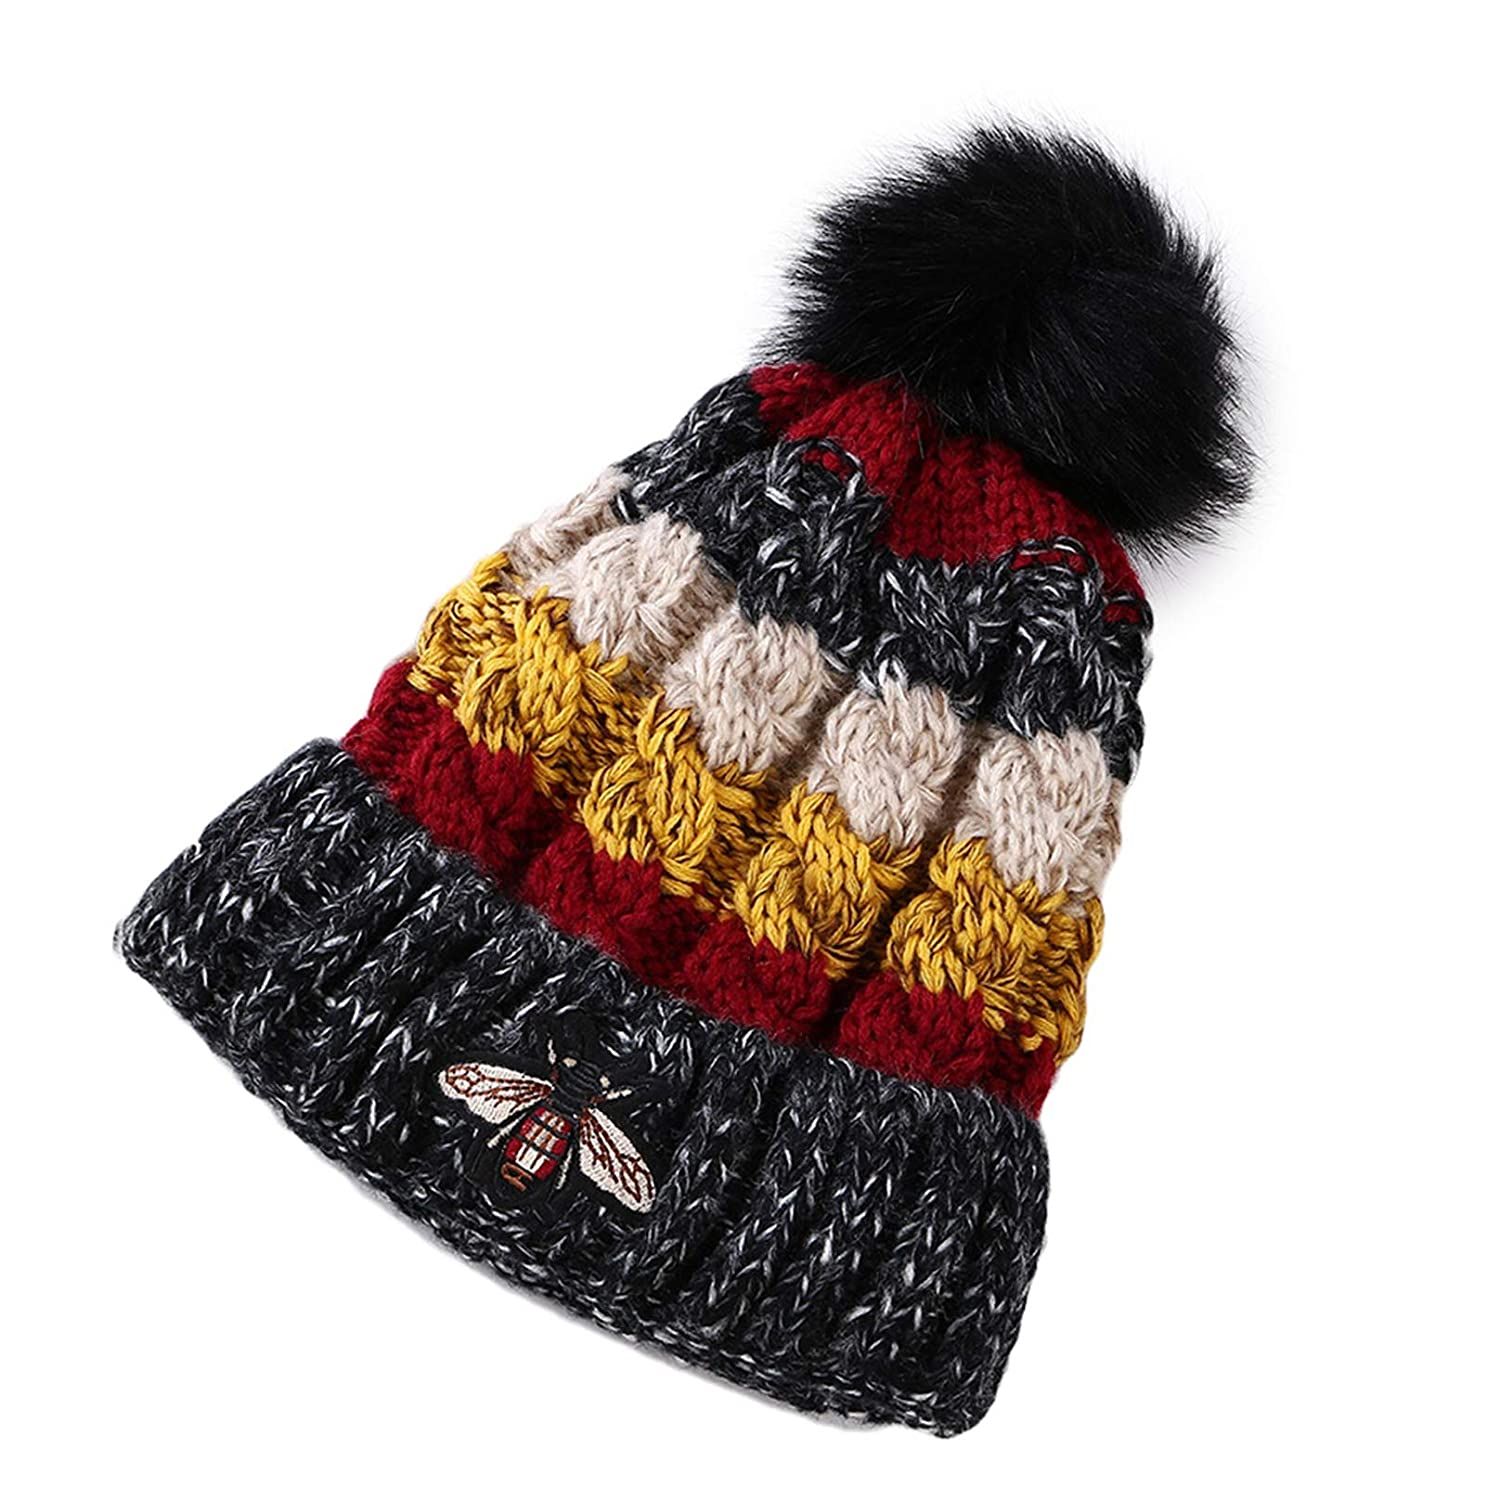 Vic Gray Women Warm Knitted Beanies with Pom Pom Cute Soft Fur Stretchy Winter Skullies Hats for Girls